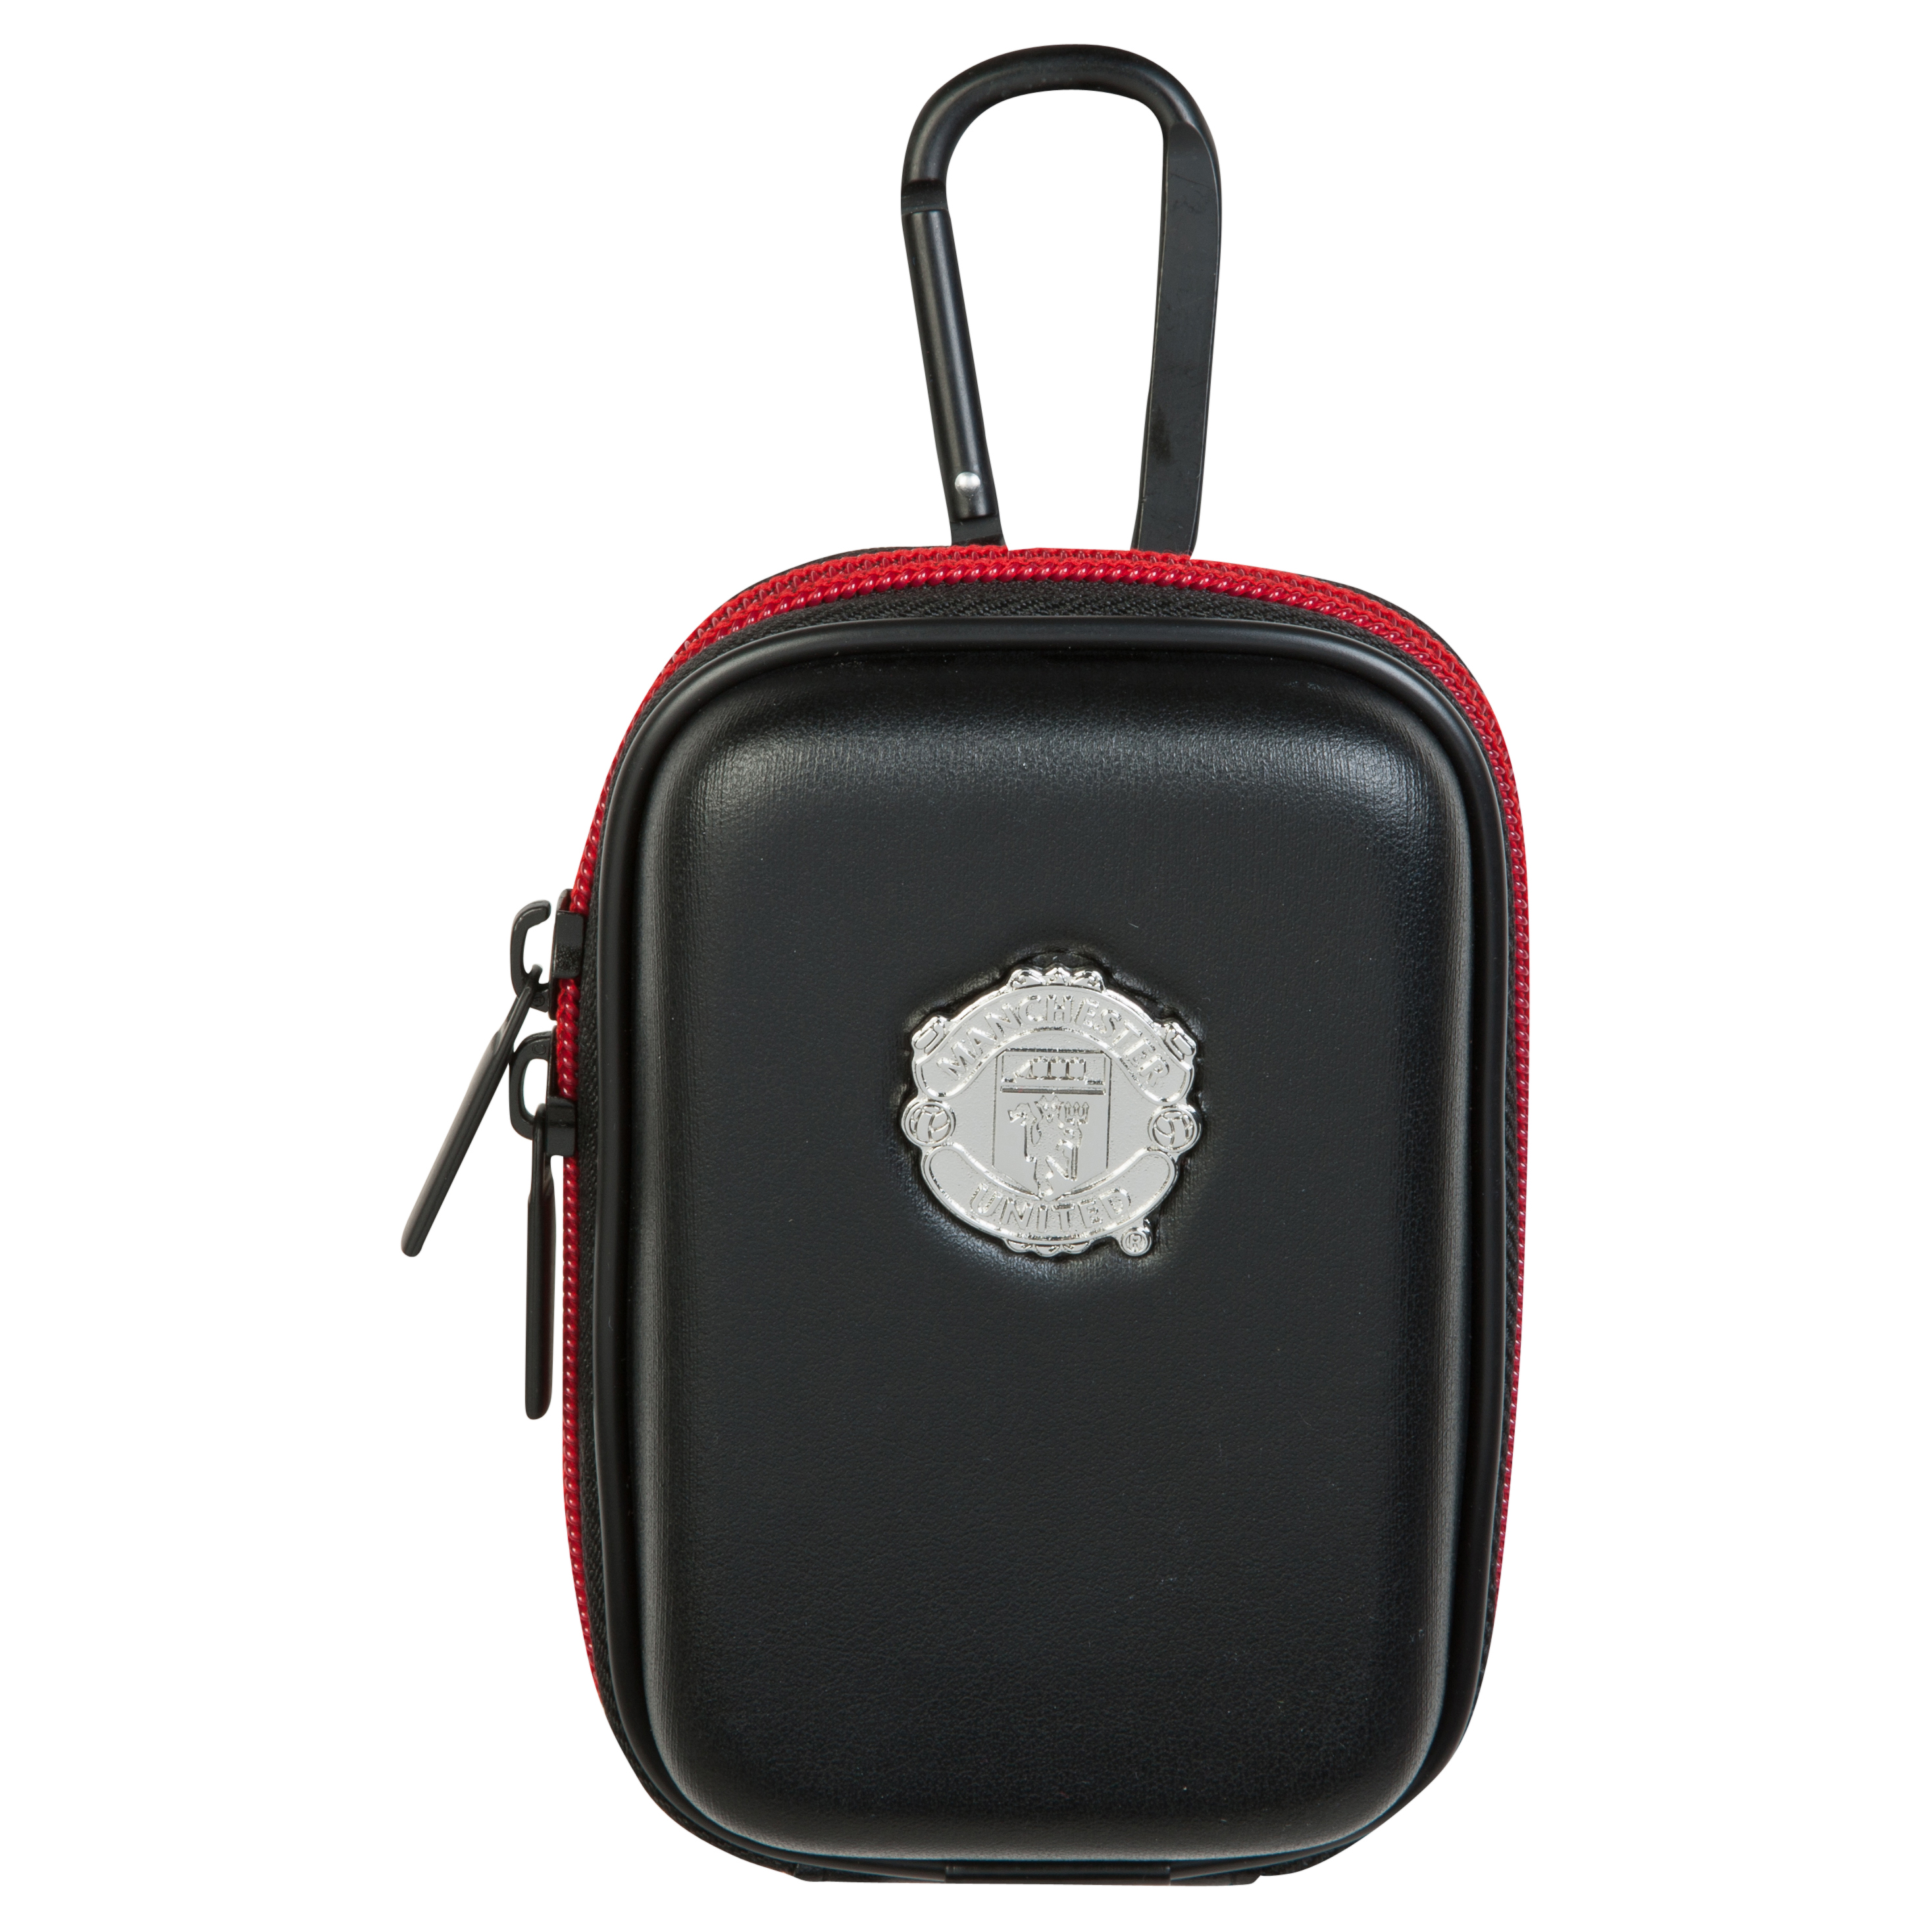 Manchester United PU Leather Digital Camera Cover with Lanyard